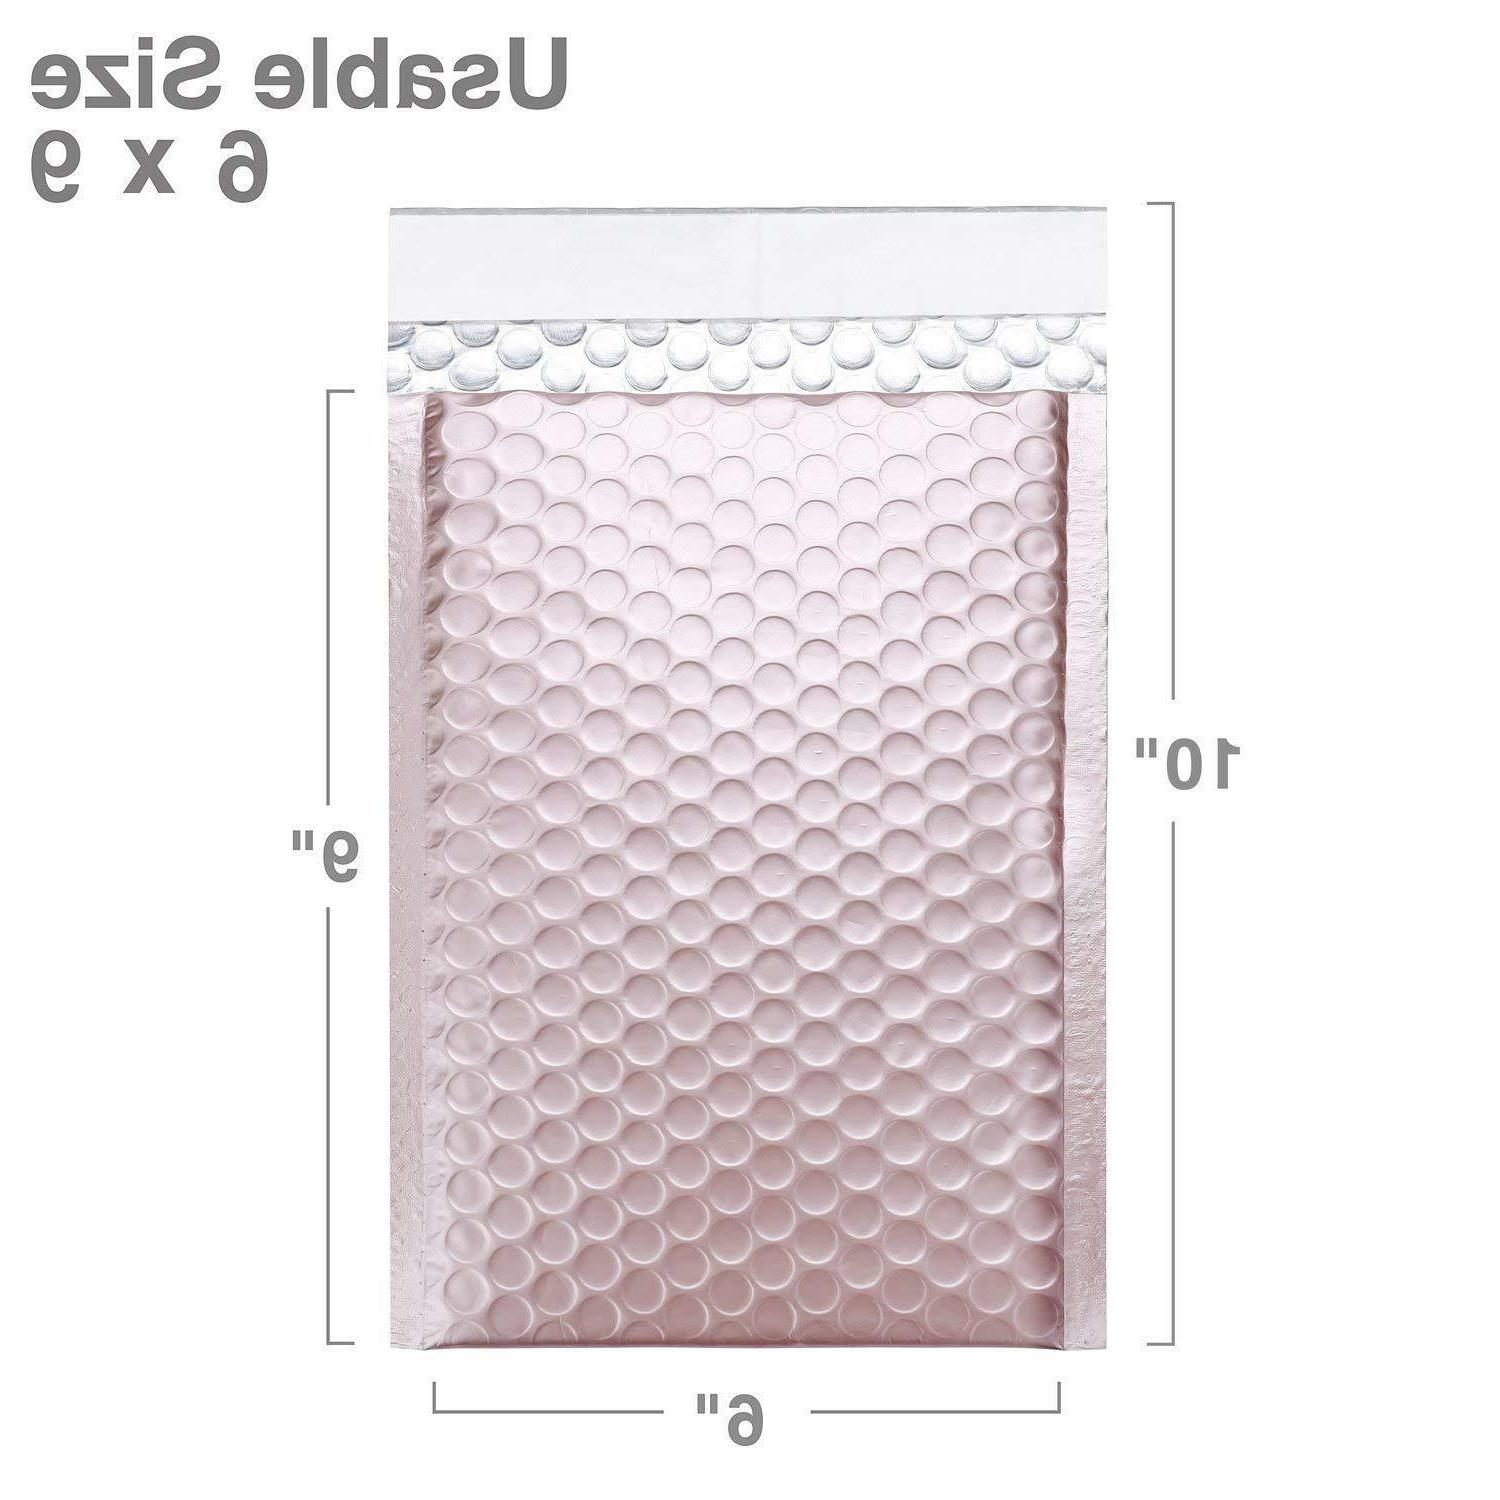 50 #0 Rose Mailers 6x10 Wide